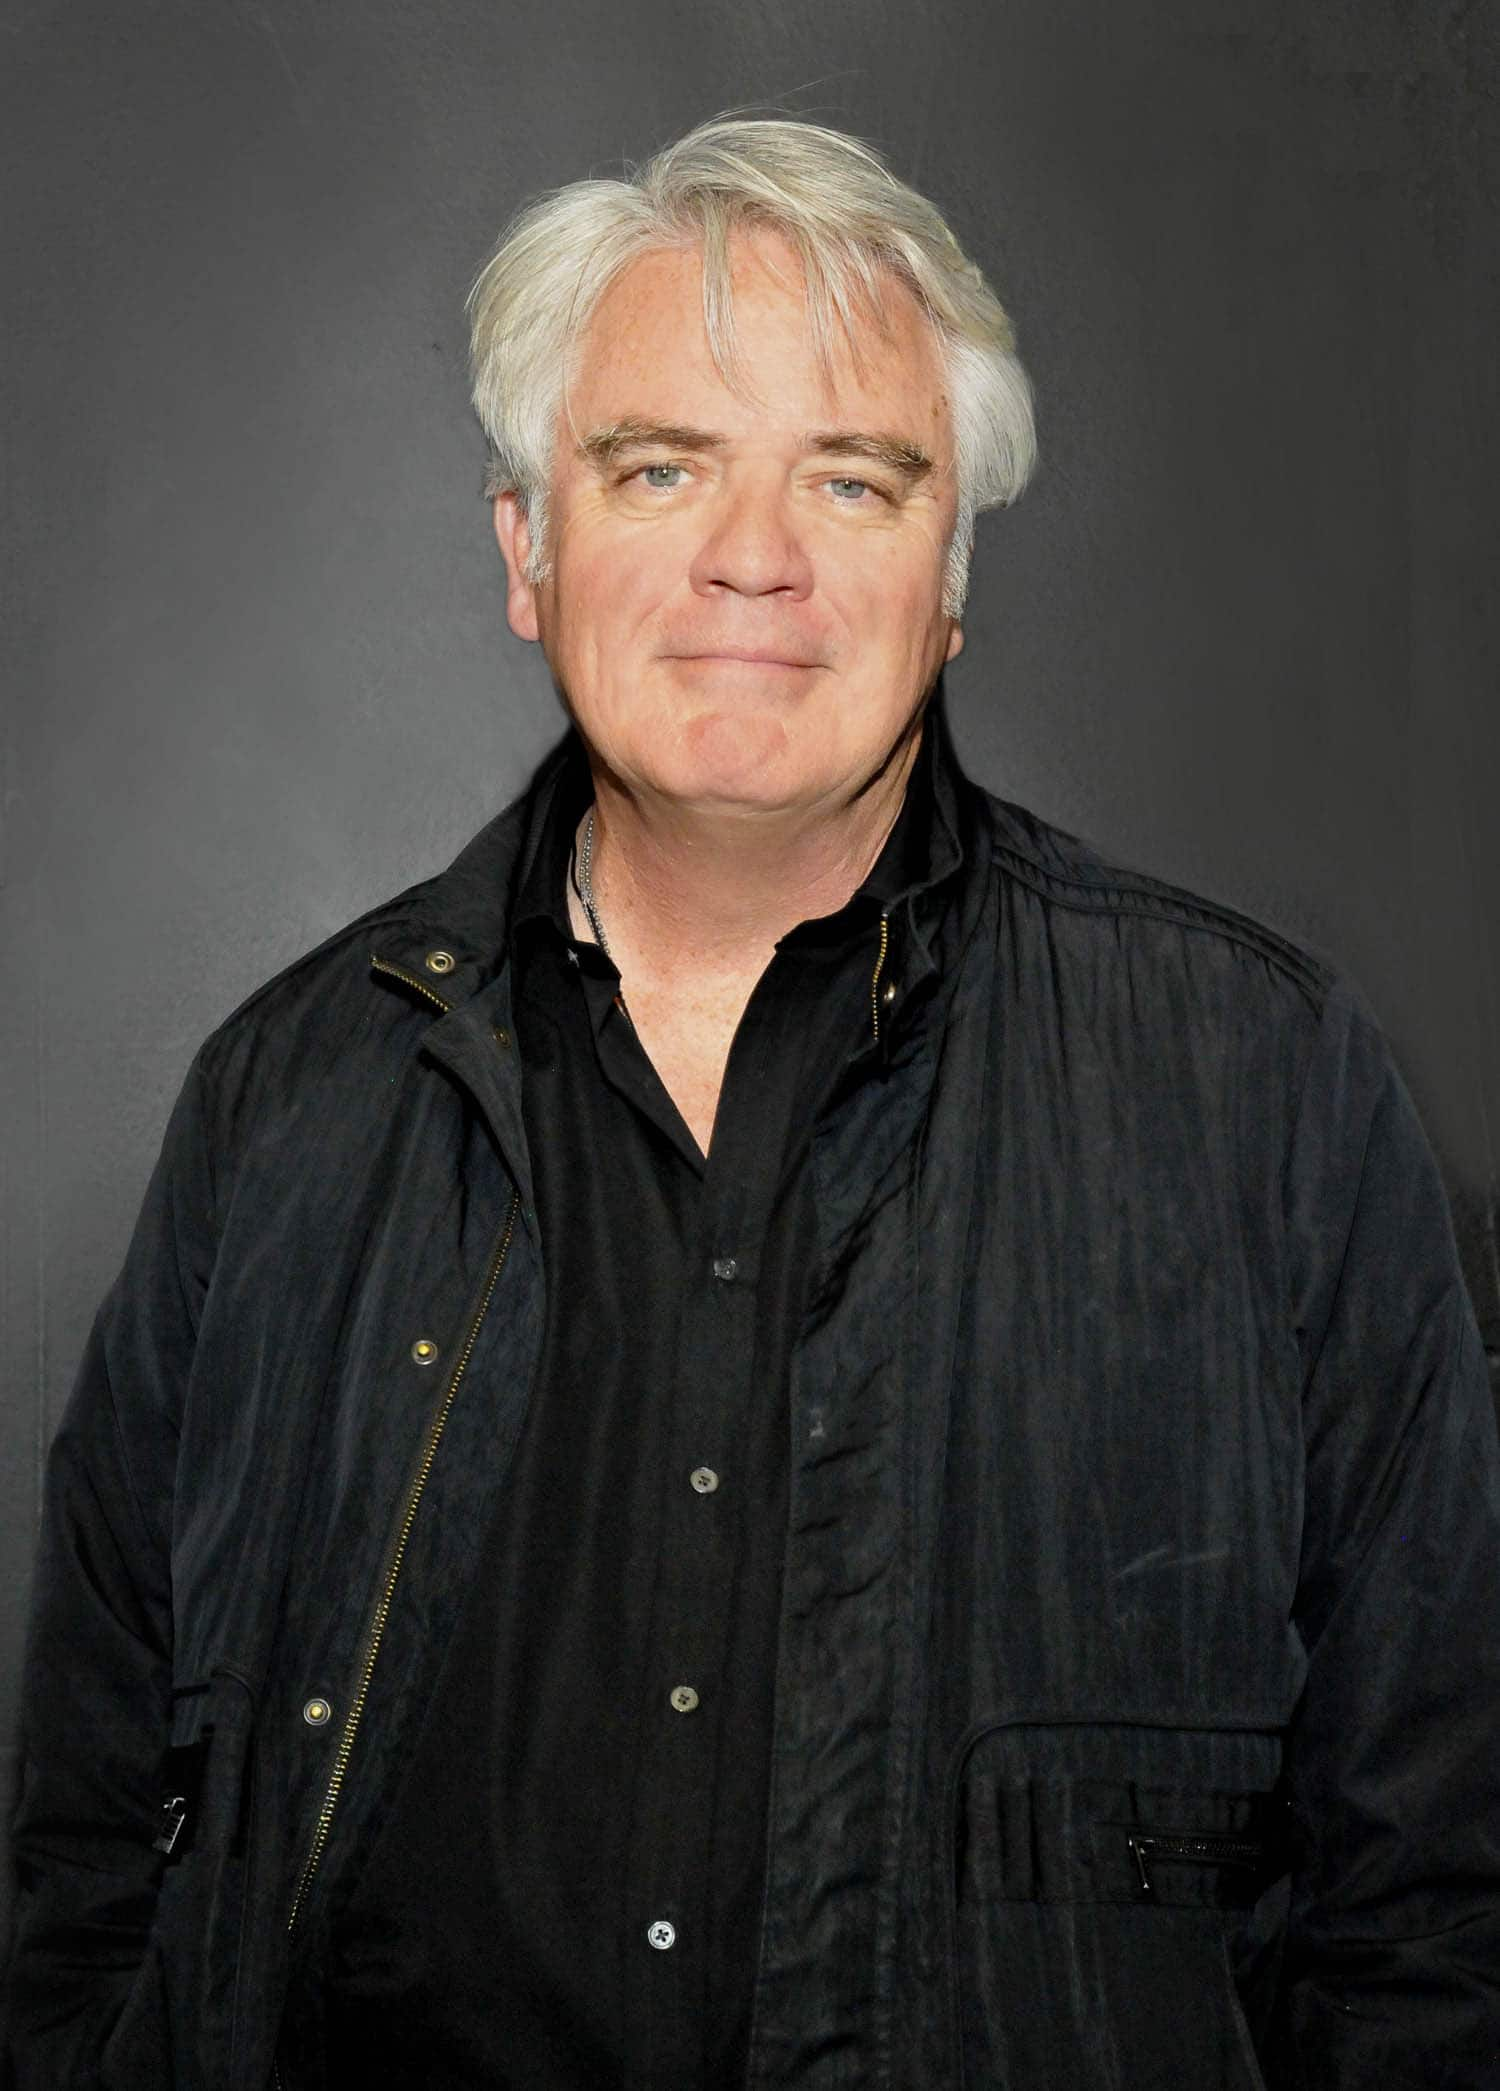 Michael Harney To Be A Part Of 'Widows'